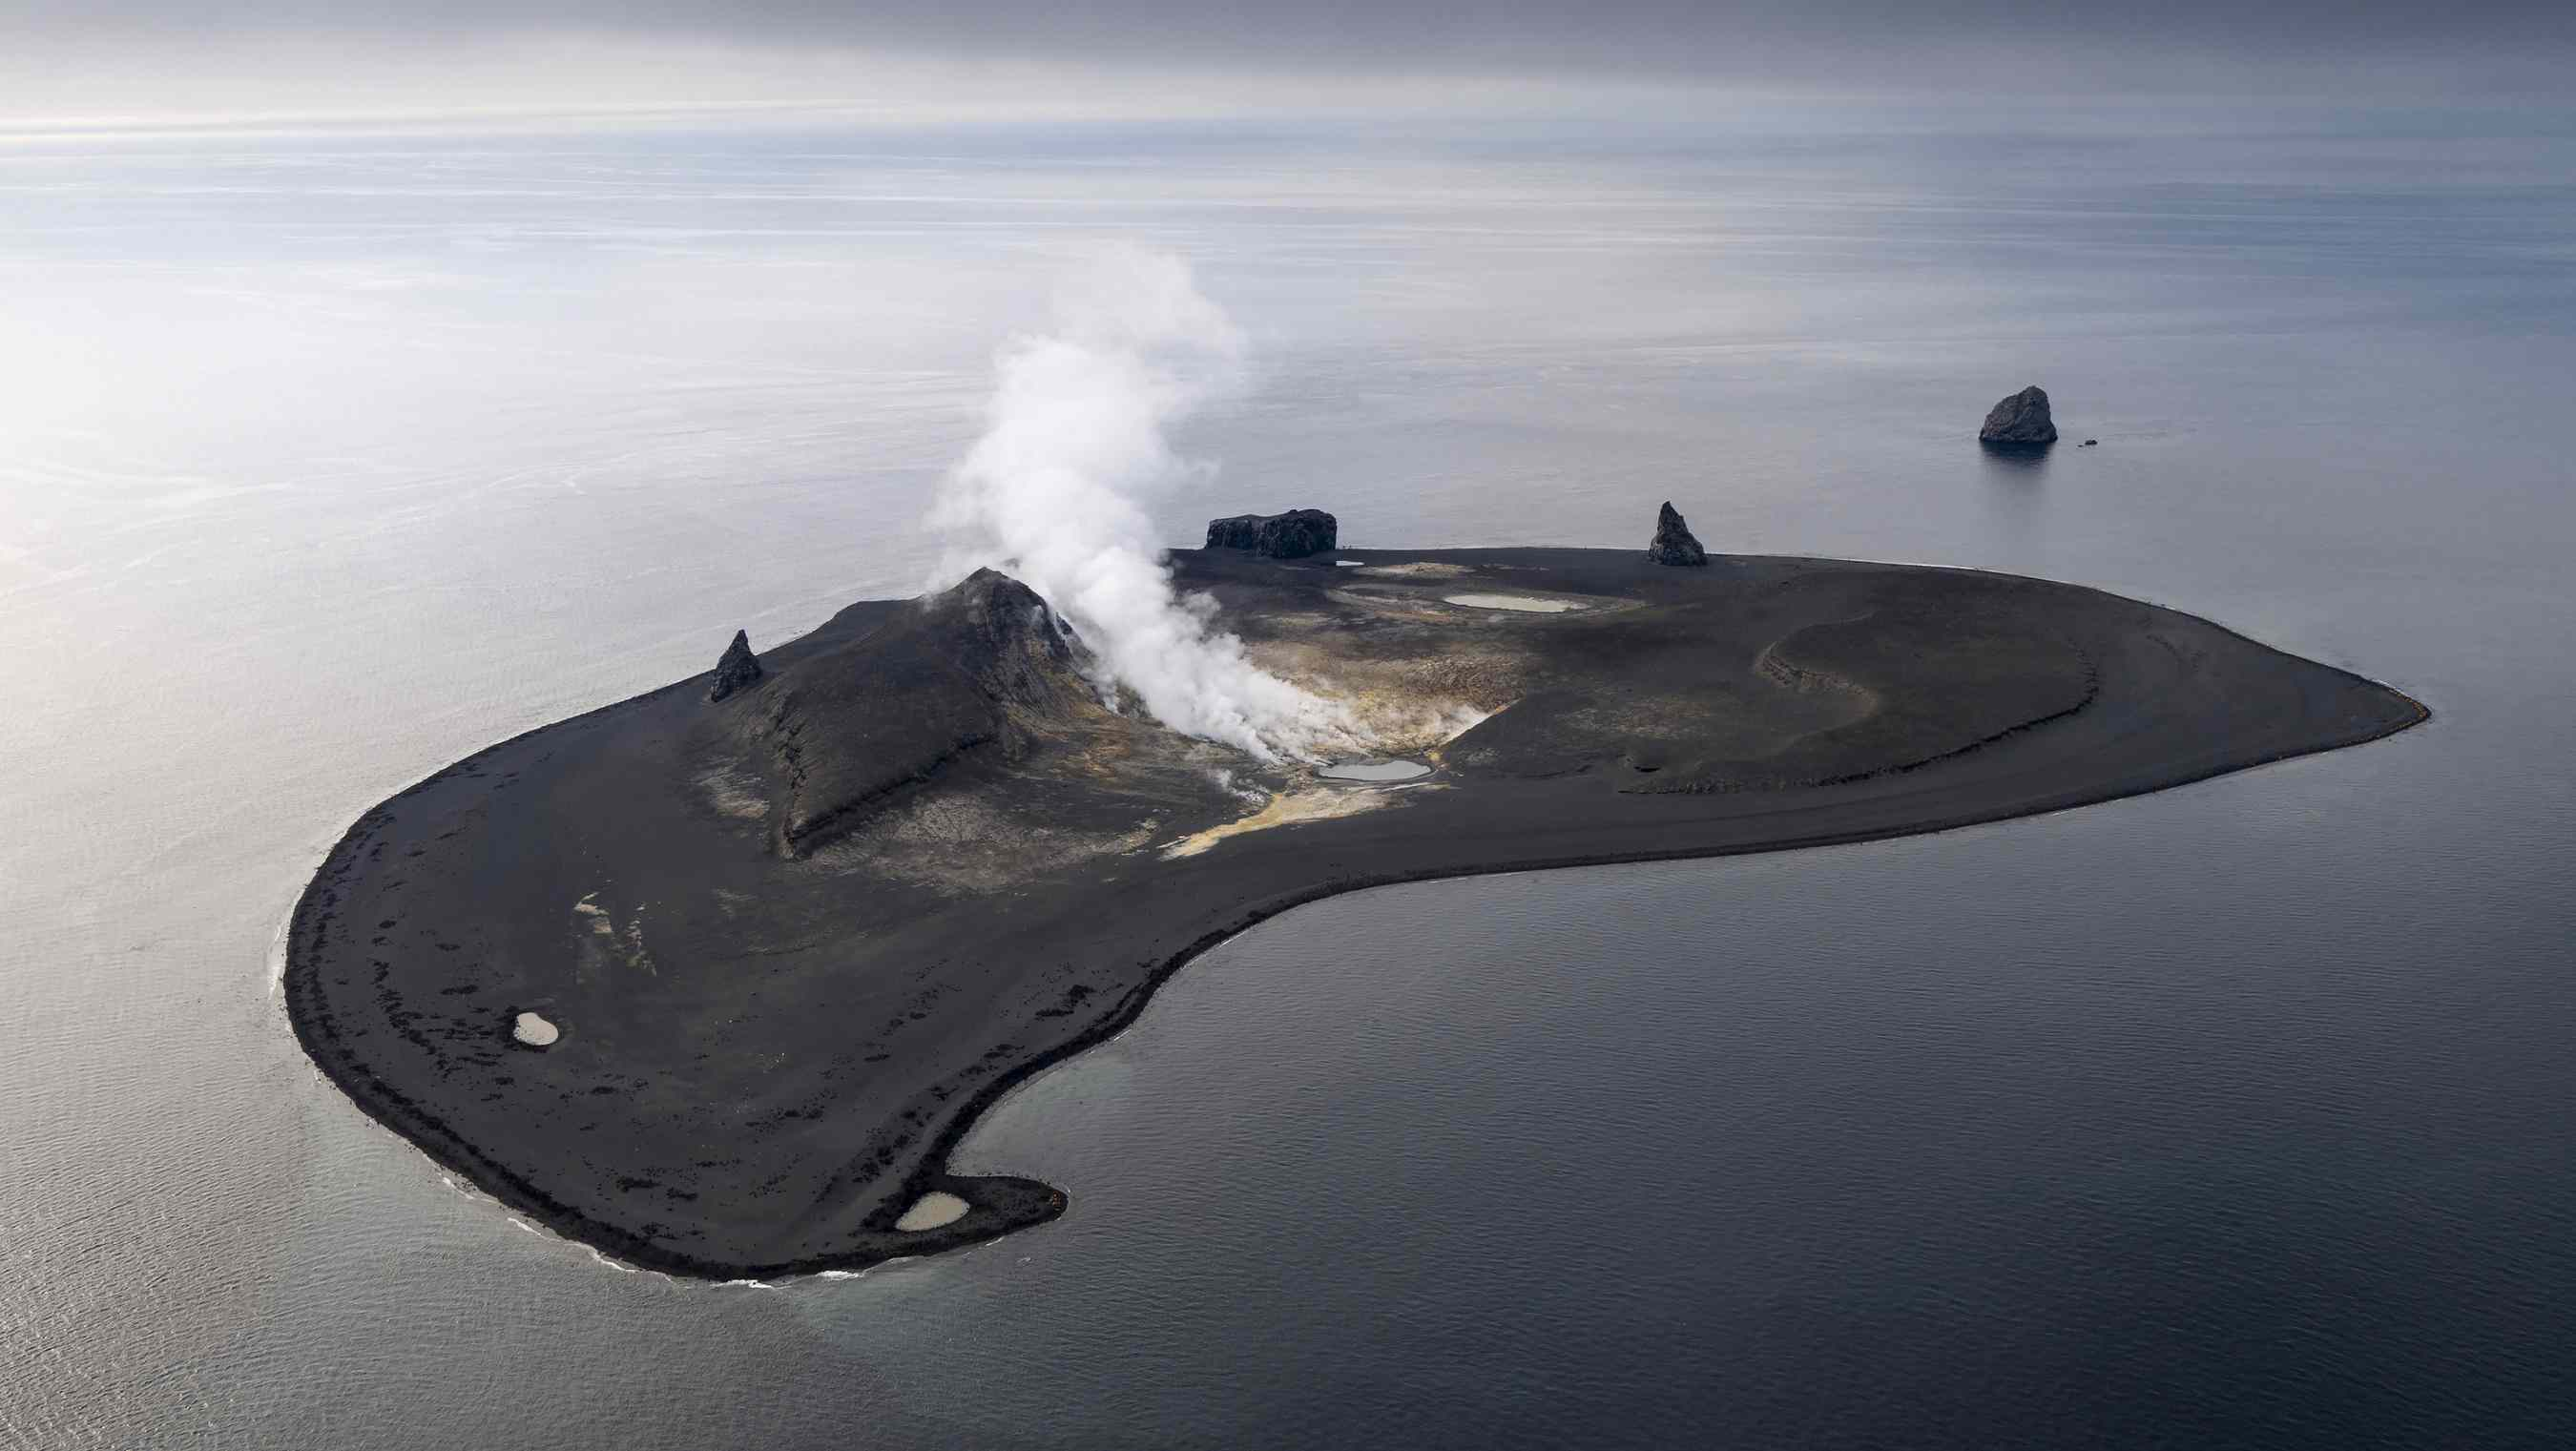 Bogoslof Island is an extremely active volcano